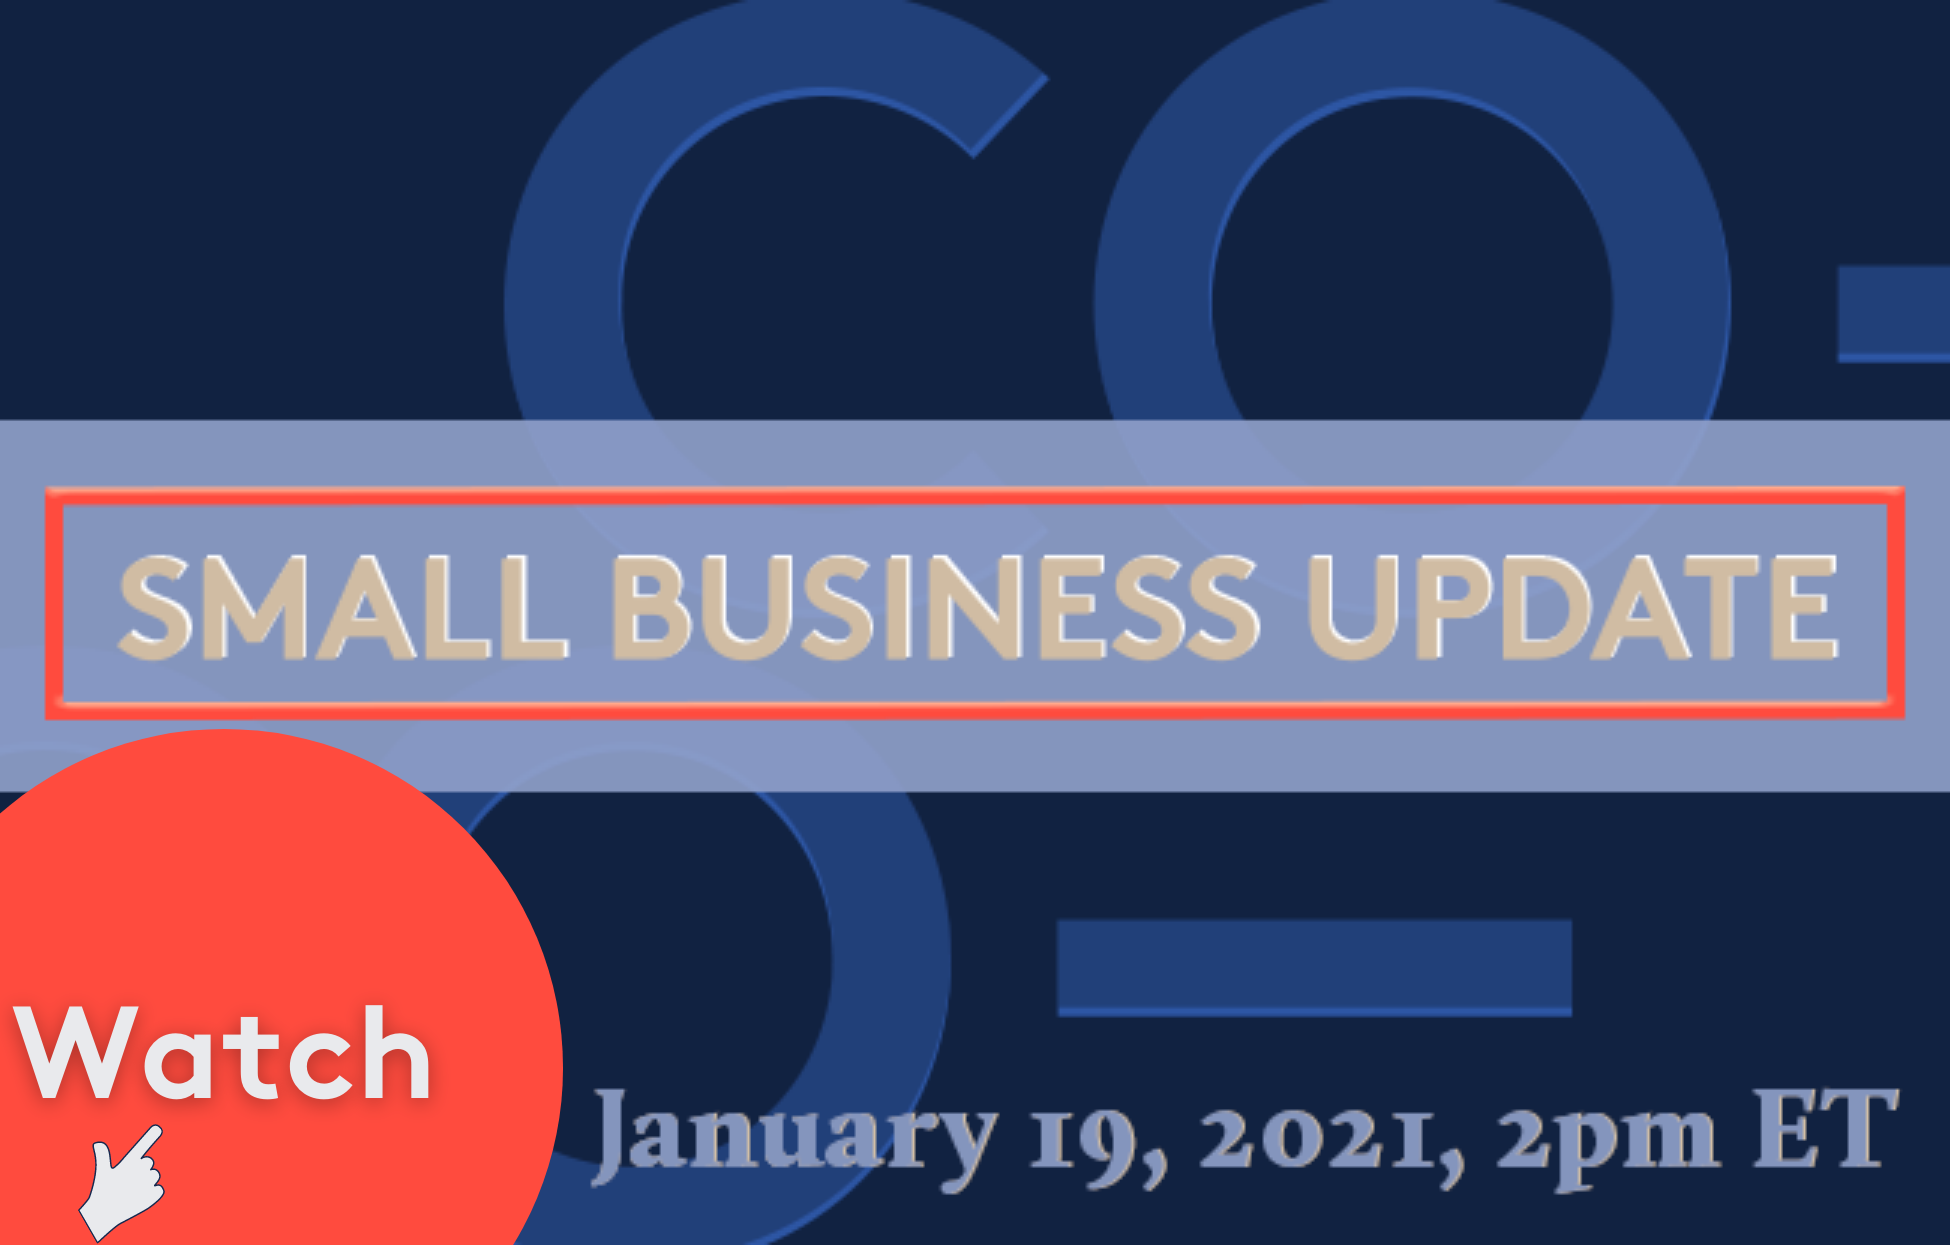 Watch the latest Small Business Update here.